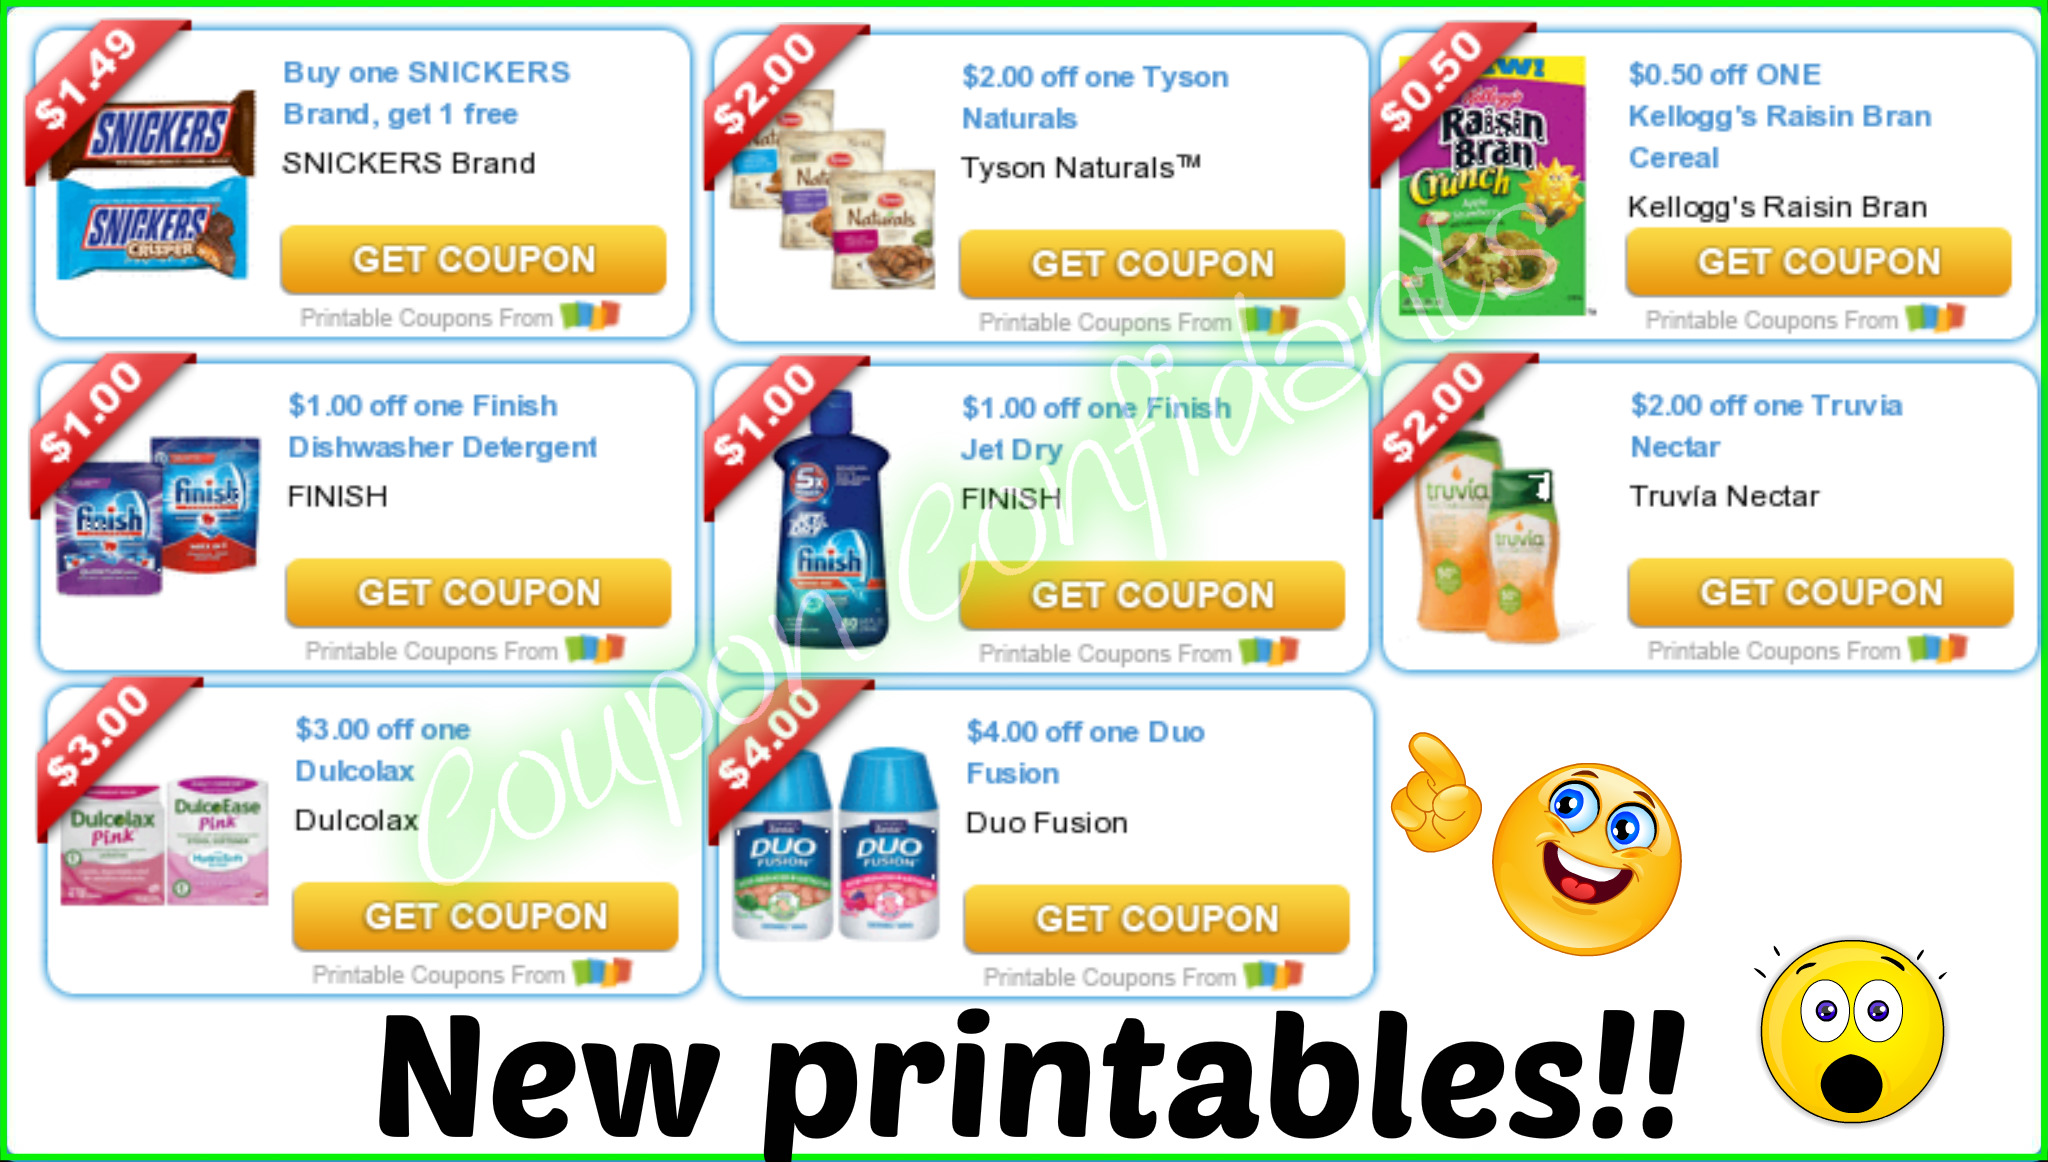 photograph relating to Truvia Coupons Printable named Very hot Refreshing Coupon codes in direction of print!! ⋆ Coupon Confidants